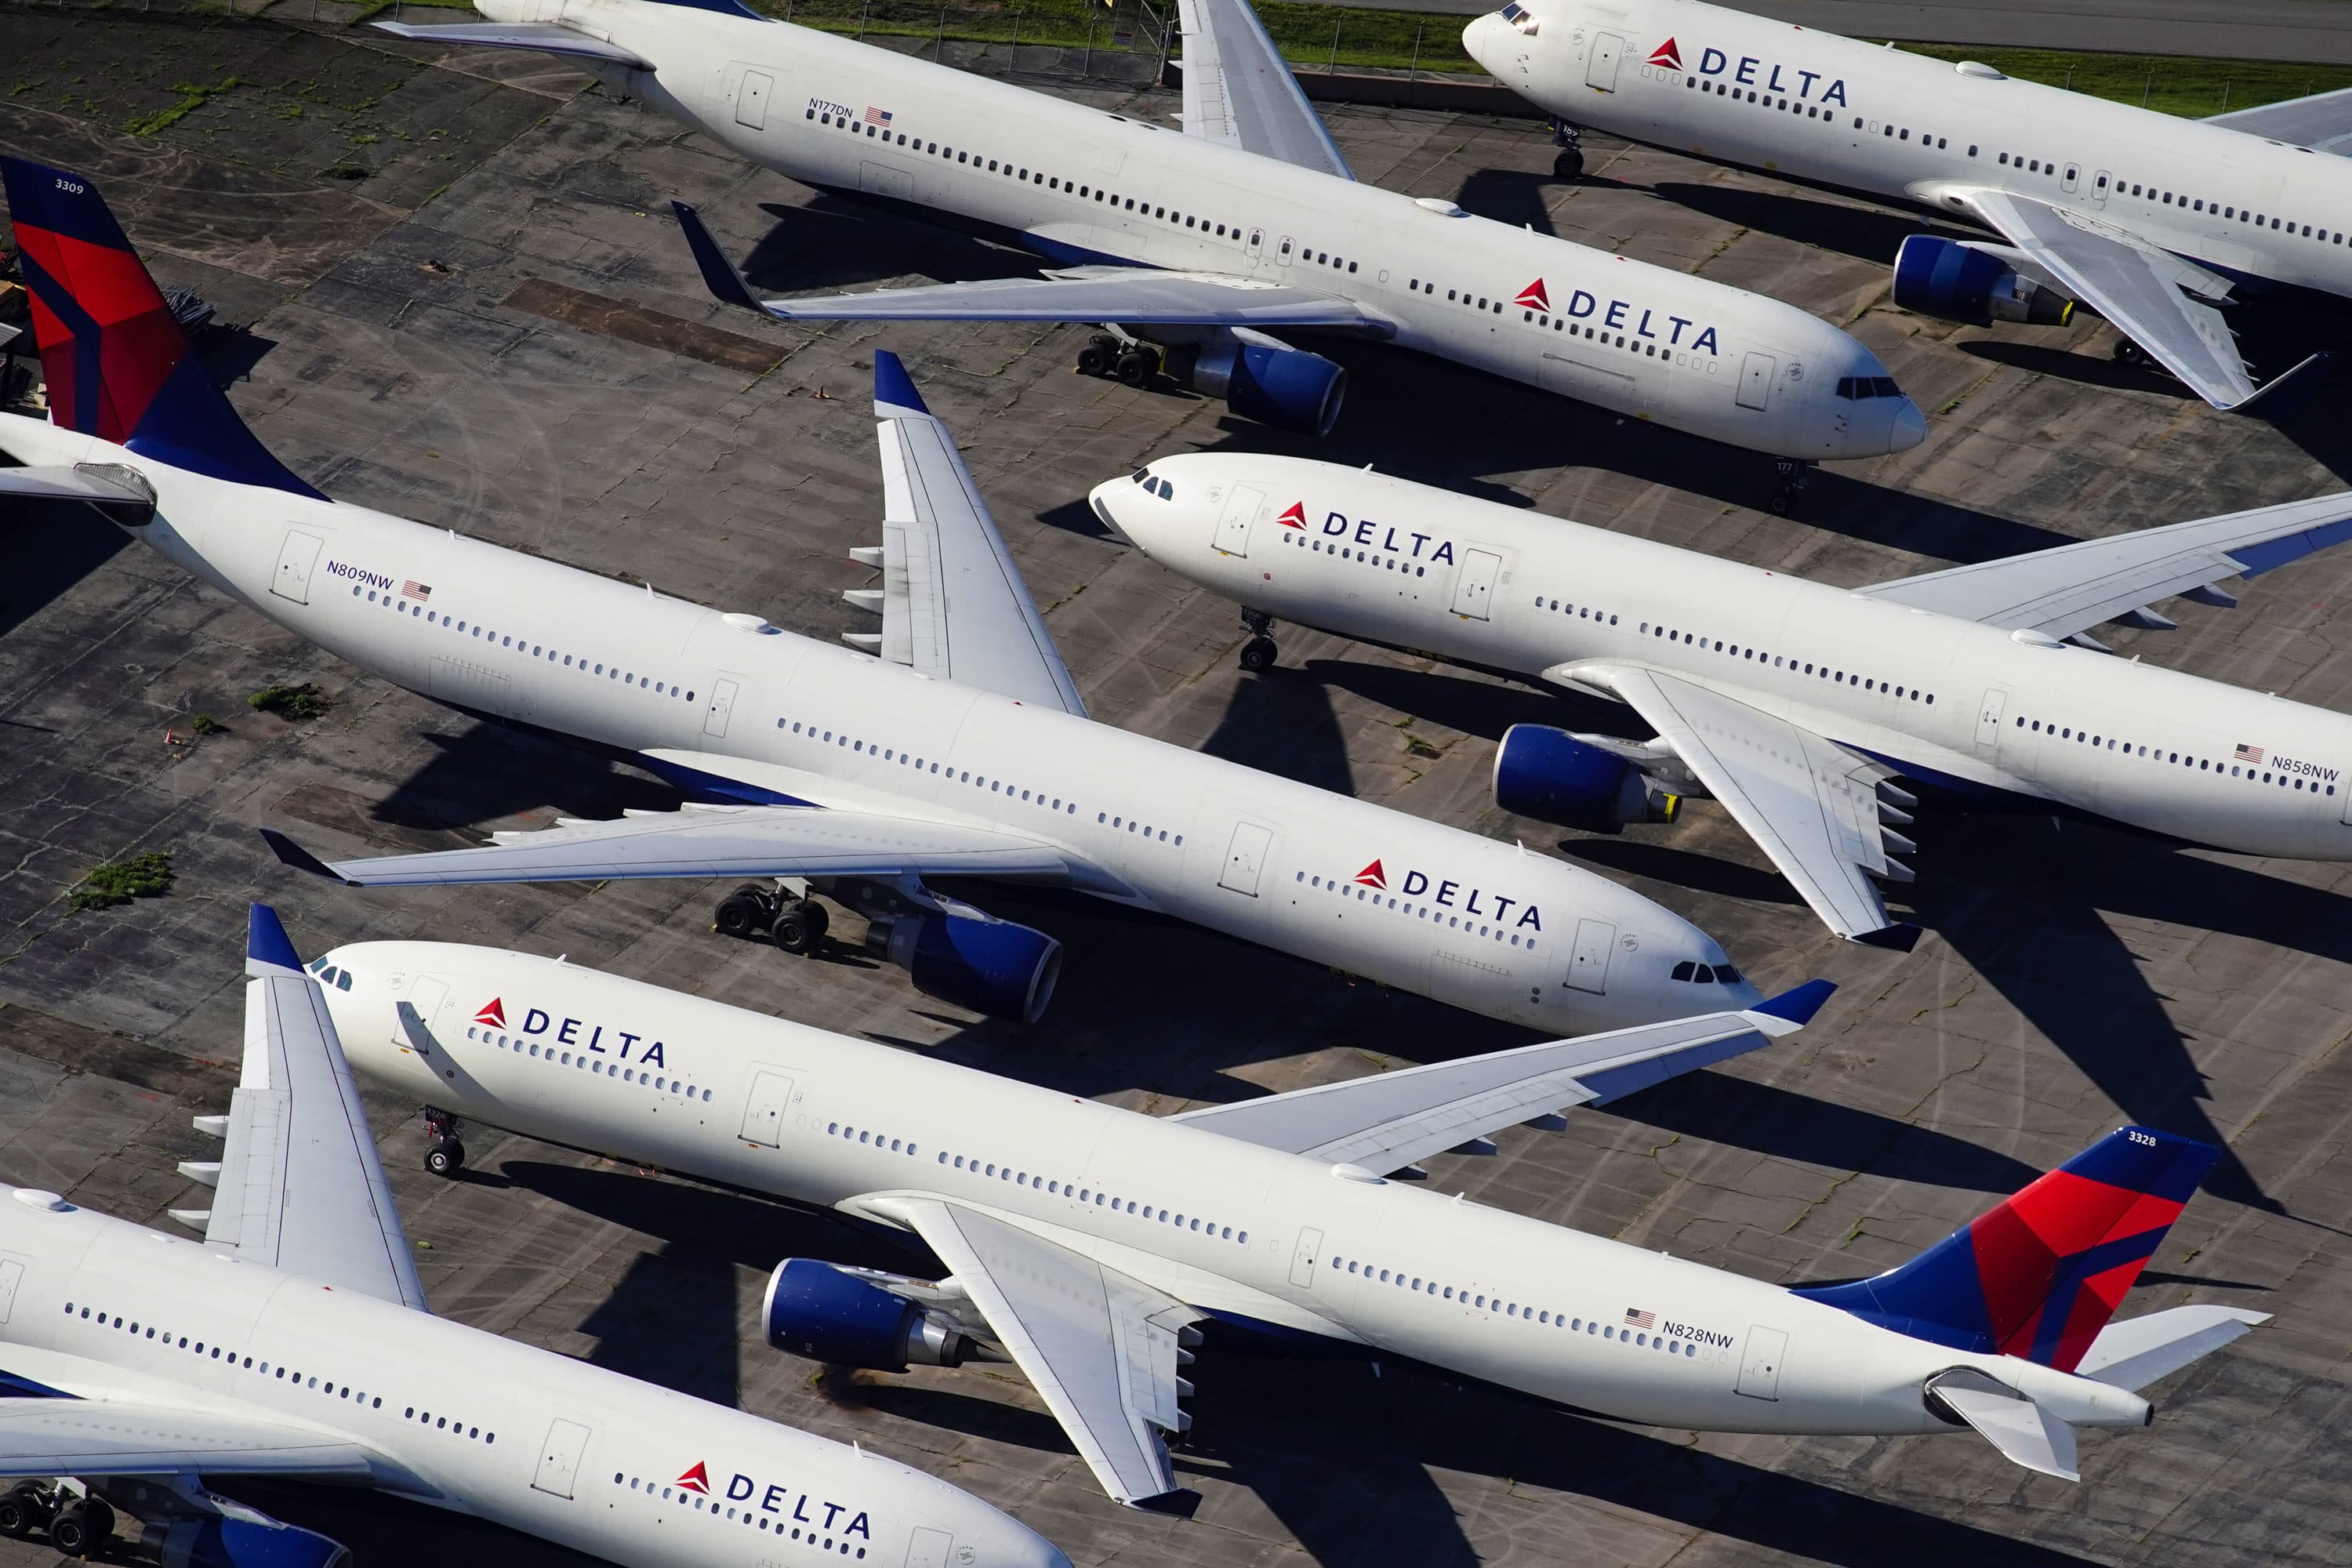 Delta CEO sends staff memo thanking 17,000 employees for leaving, says it gets airline closer to 'minimizing furloughs'